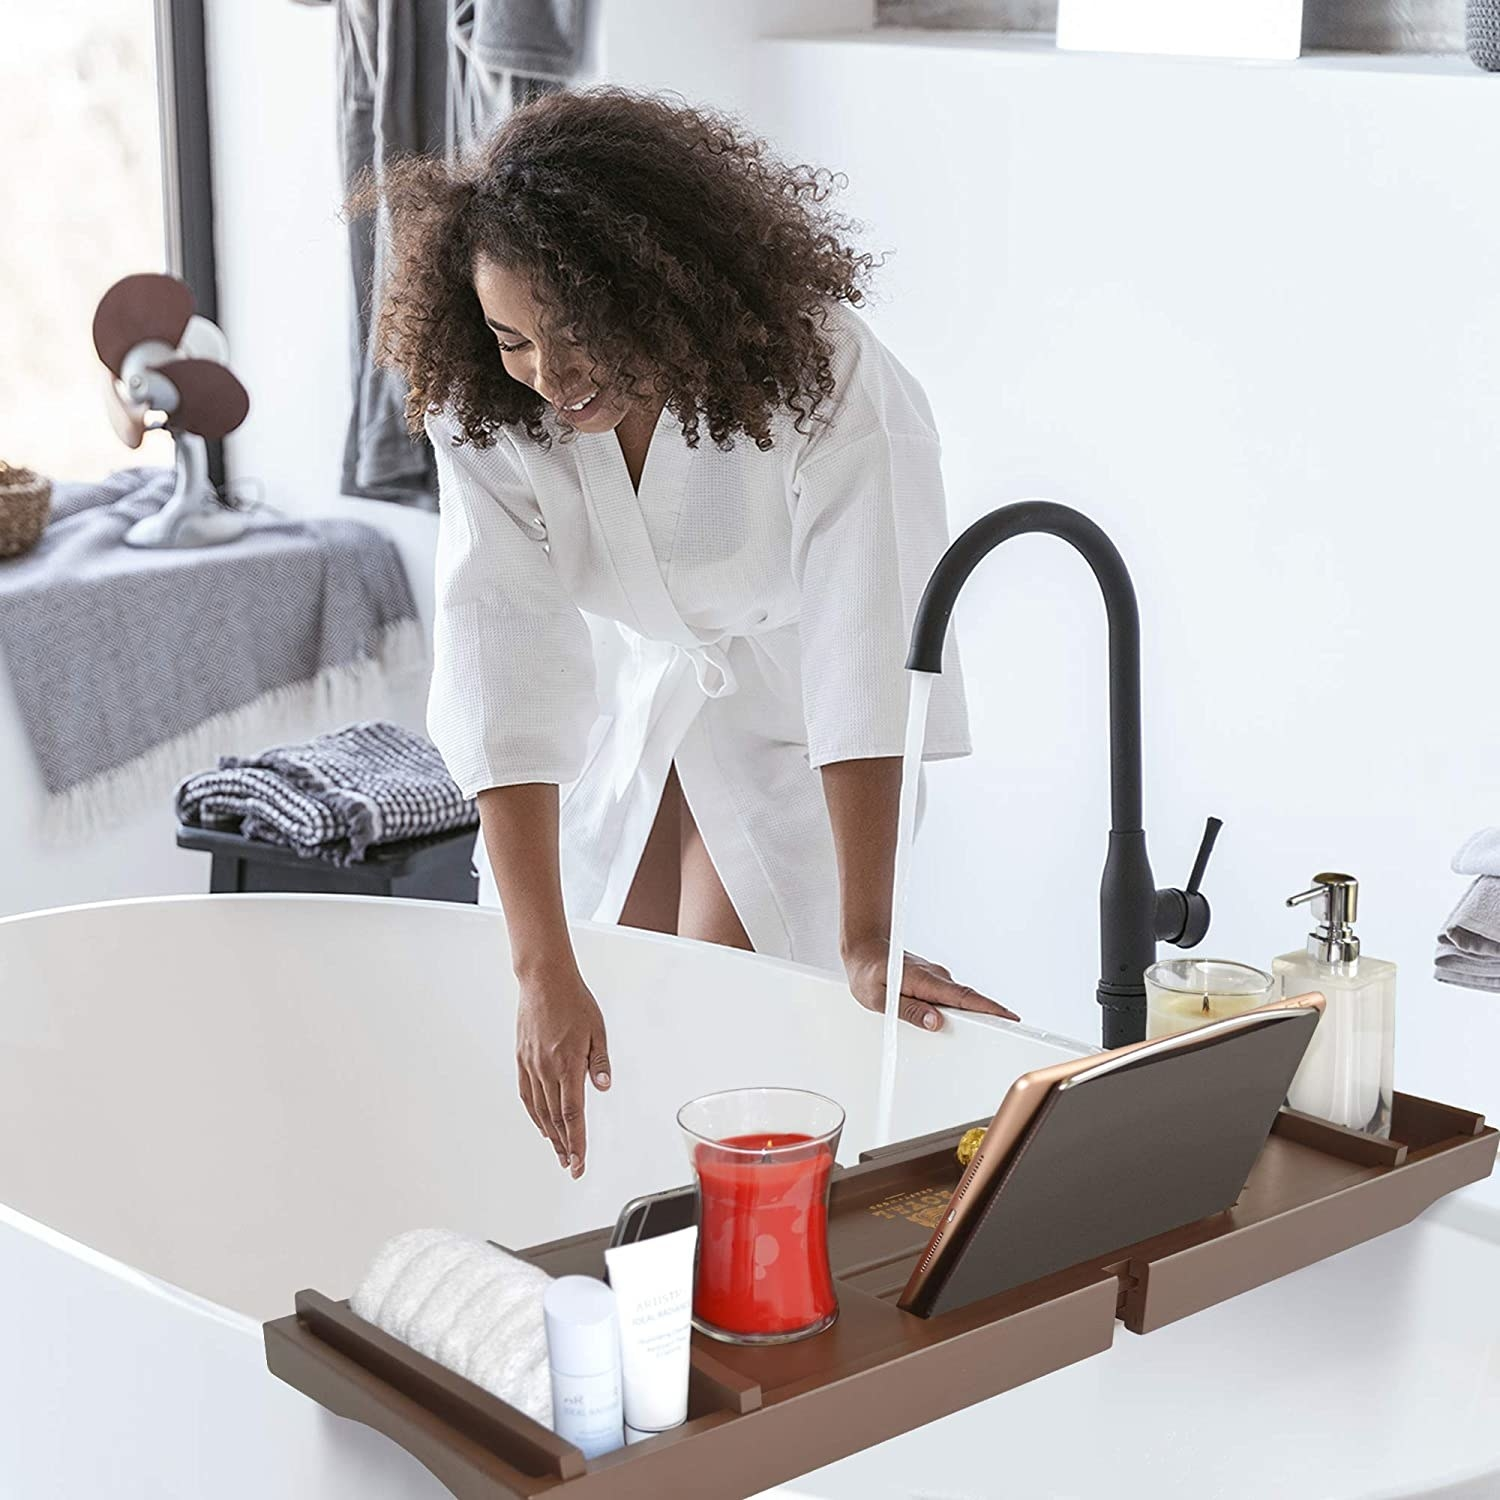 Bath caddy set up over a bathtub and a person standing beside it in a bathrobe.